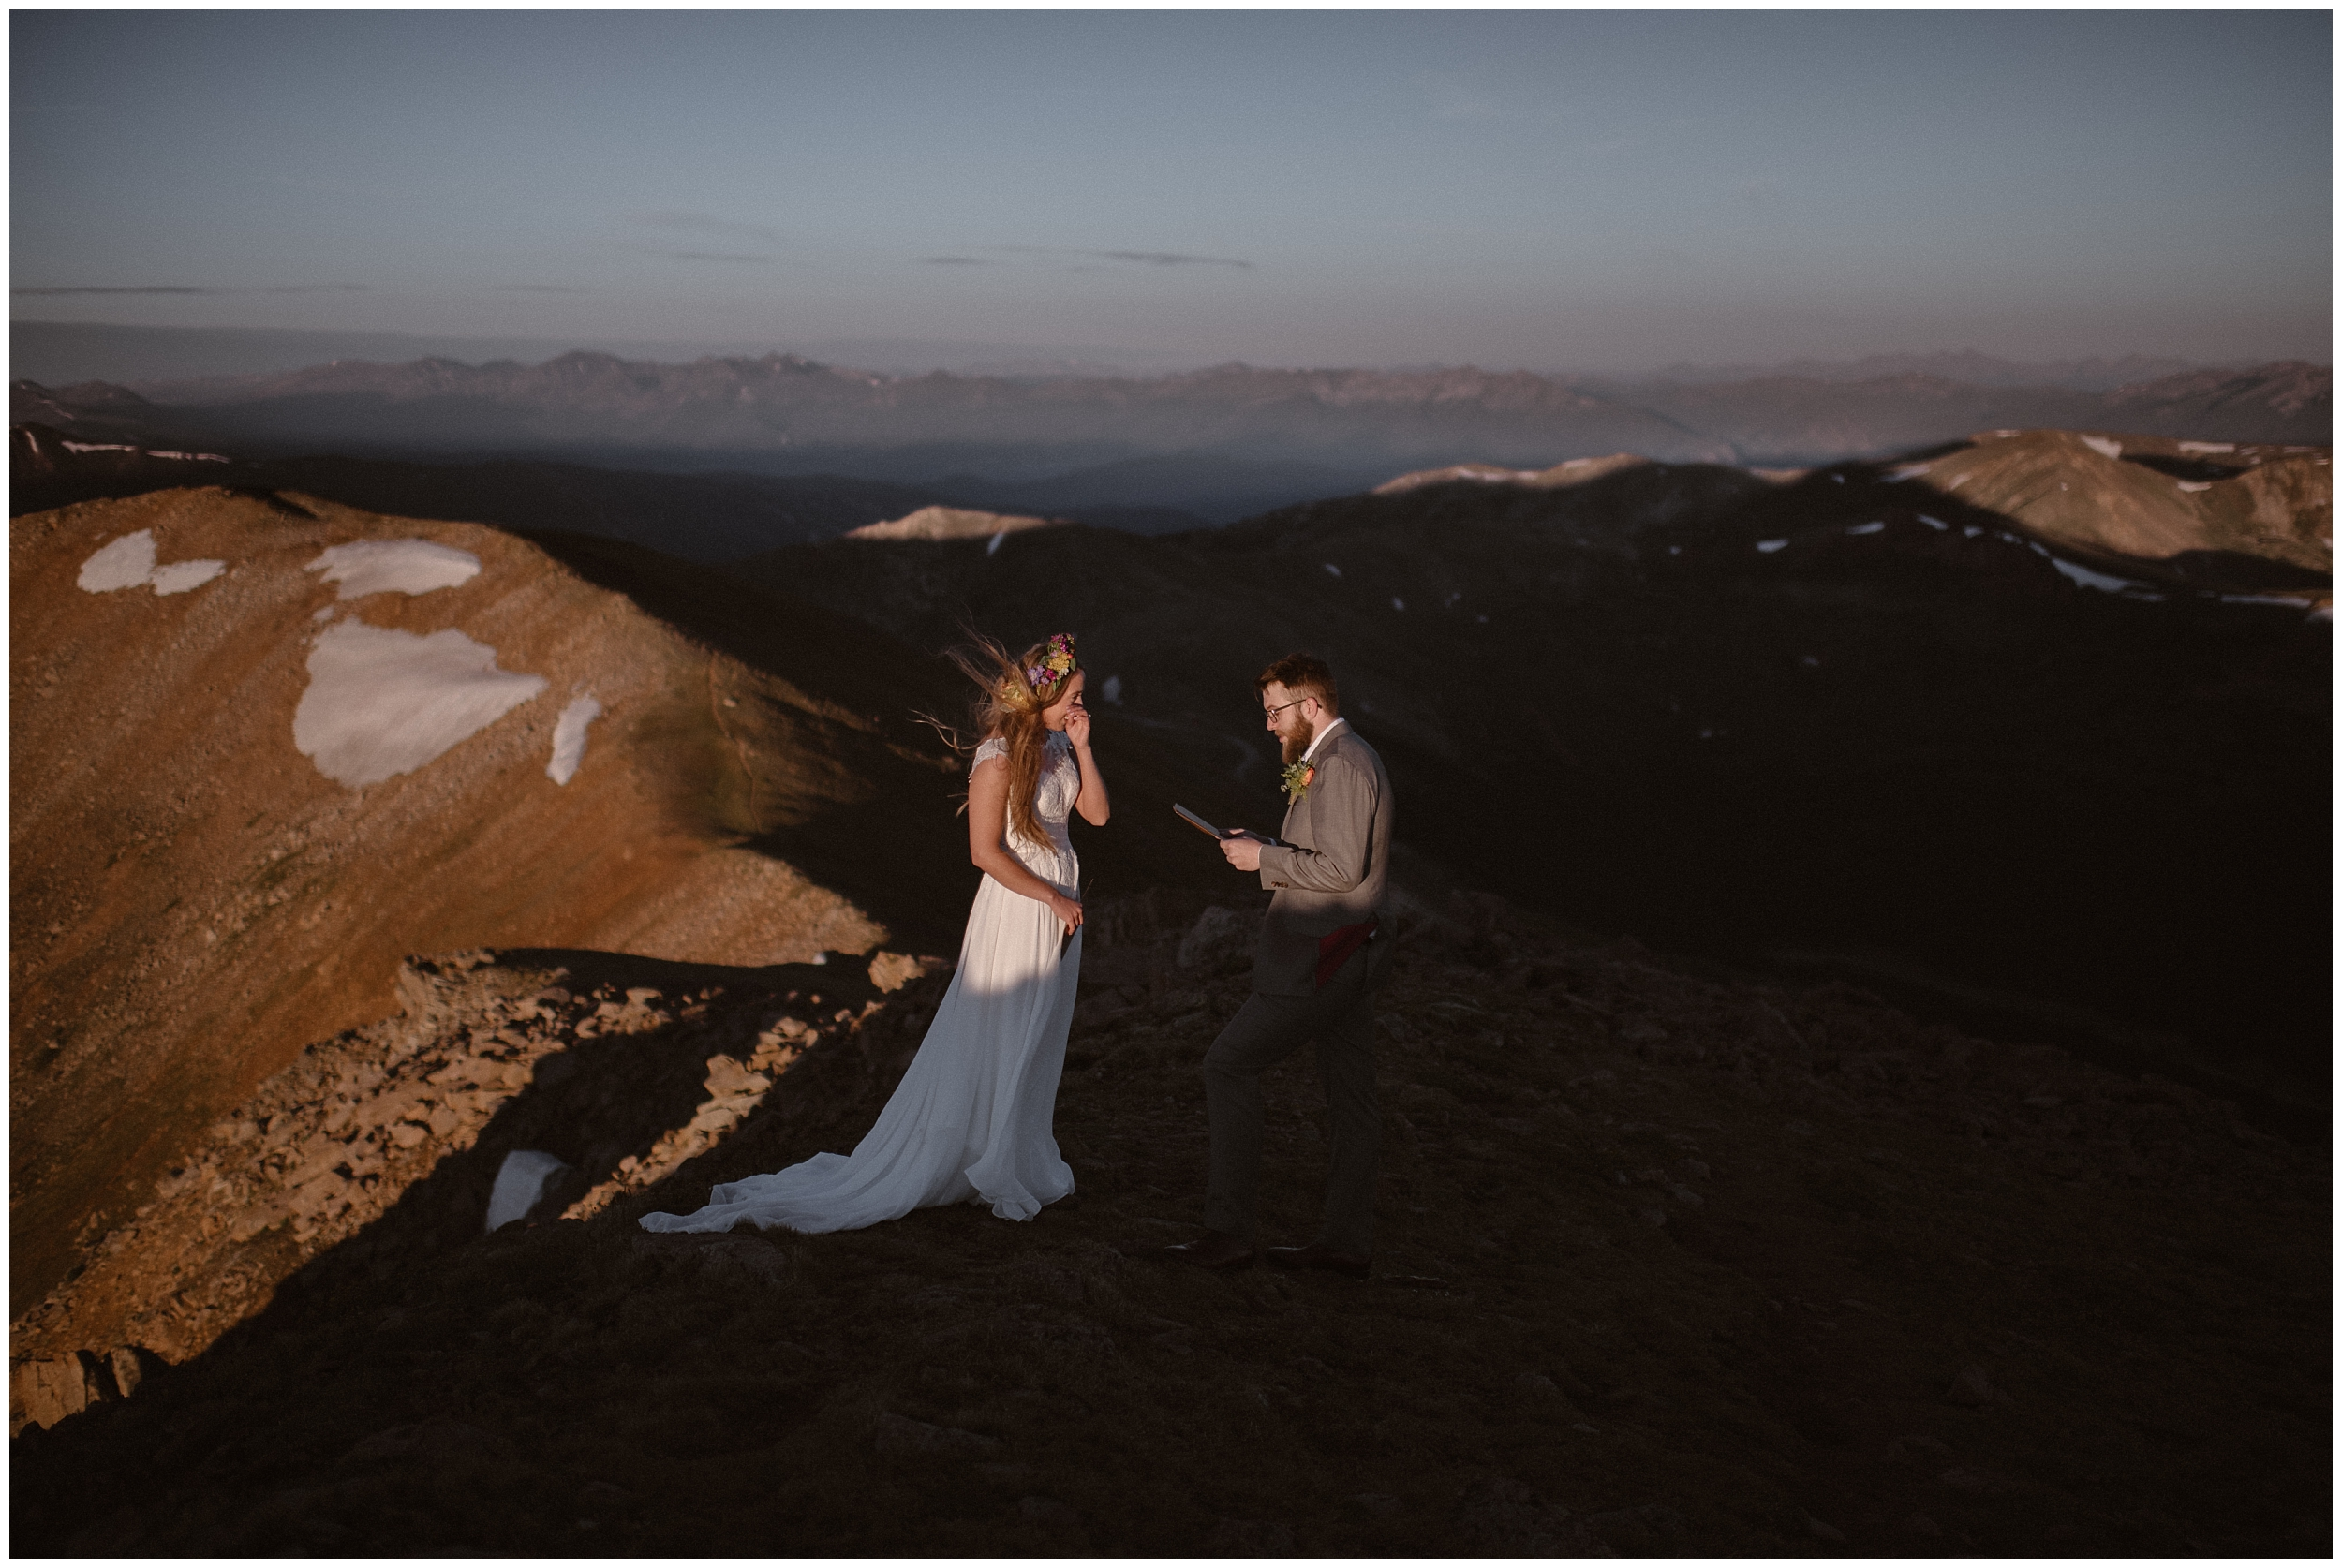 A bride and groom stand on top of an icy mountain during their wedding ceremony. These elopement pictures show some of the benefits of eloping—a secluded spot, the freedom to have a non traditional wedding ceremony, and the freedom to choose if you want to self-solemnize or have a wedding officiant.